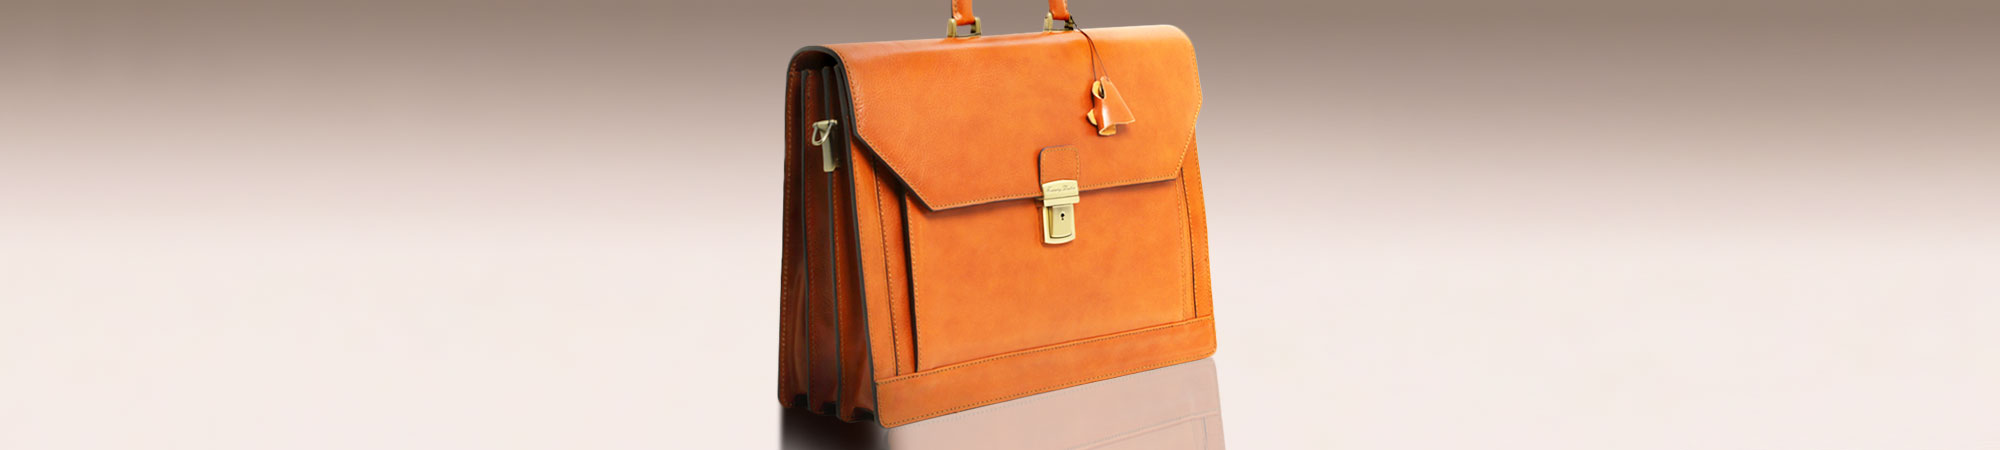 a658580a0330 1st Class Collection Buy Online at Tuscany Leather